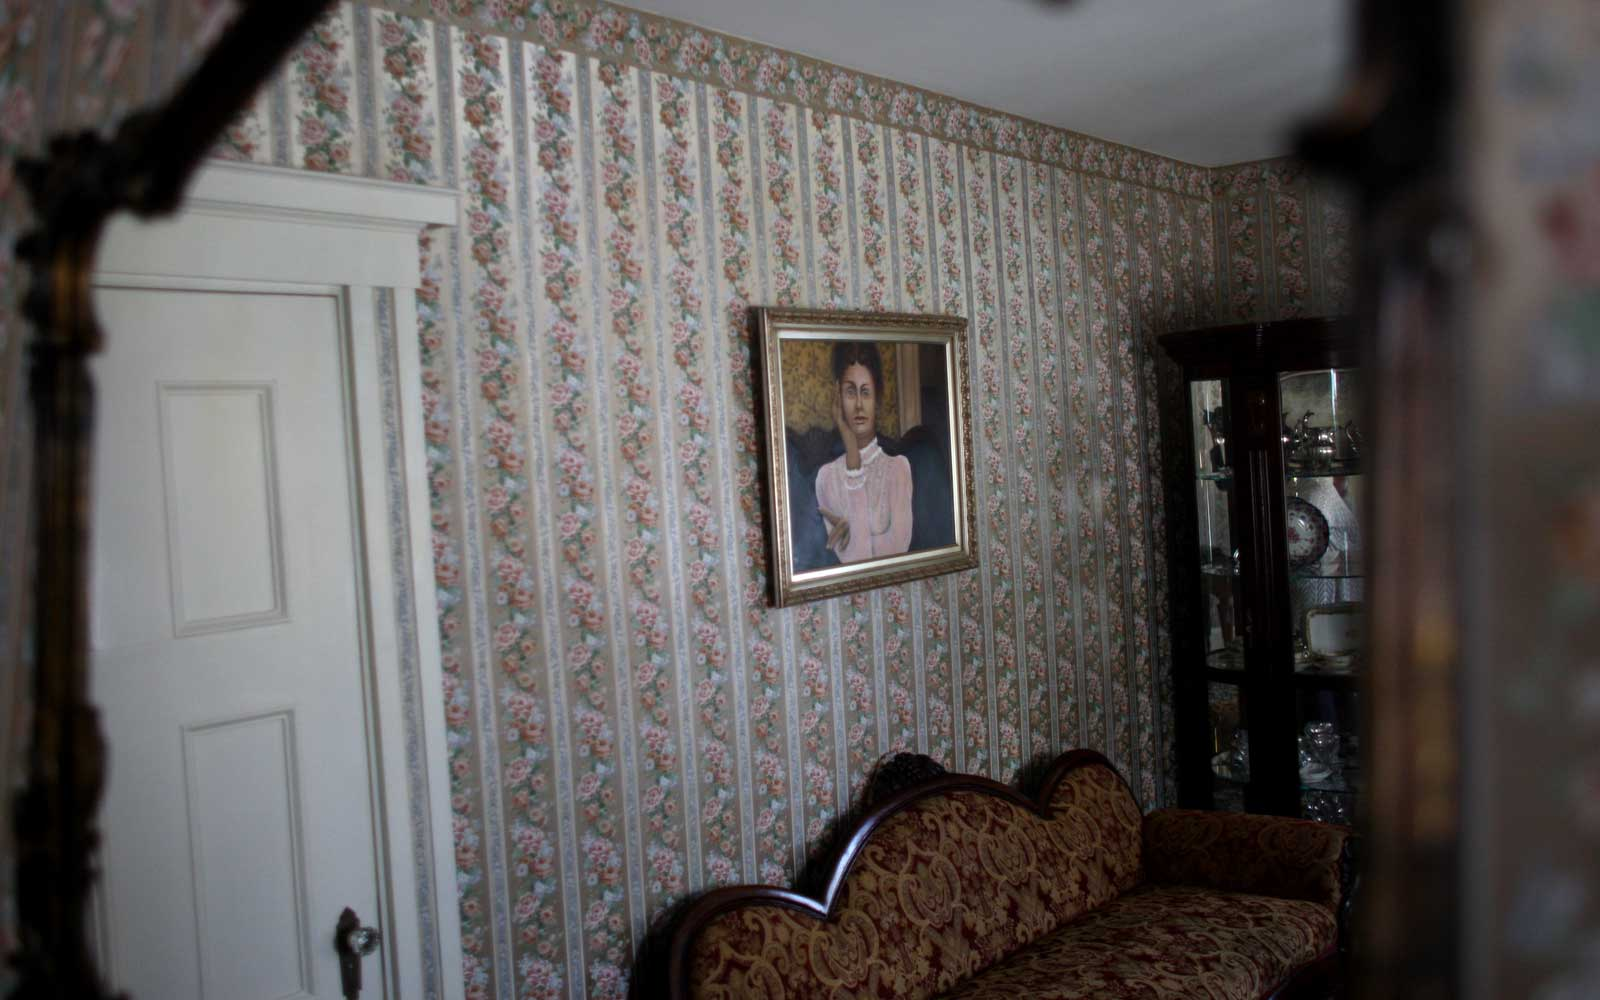 A portrait of Lizzie Borden hangs on a wall at the Lizzie Borden house in Fall River, which is now a bed and breakfast.